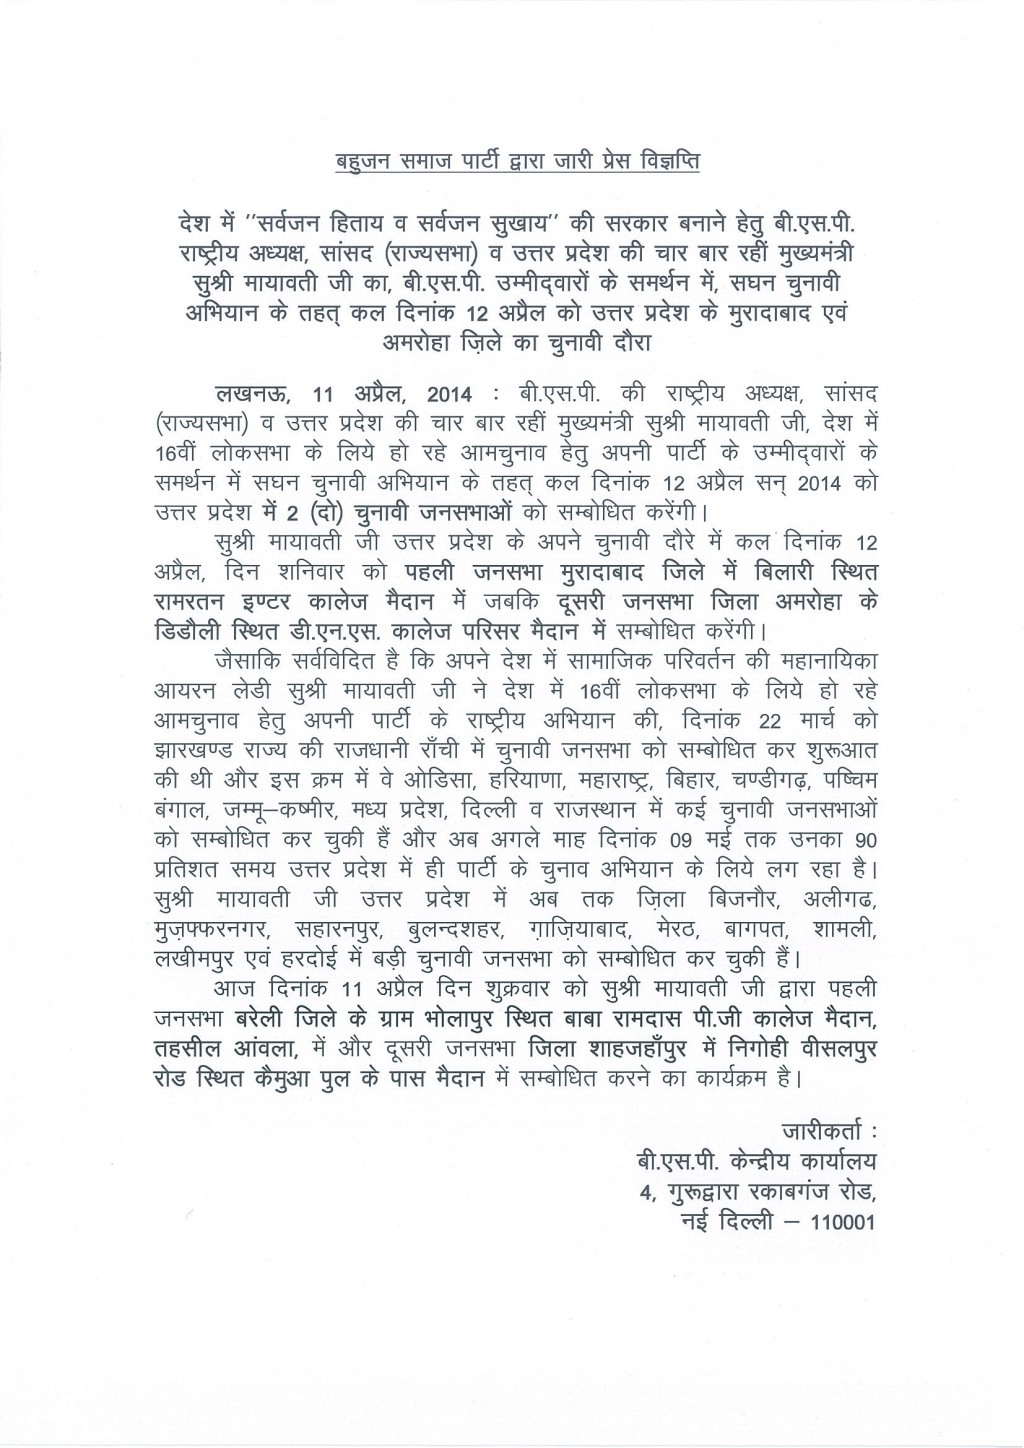 013 Essay On Earthquake Example Bsp Press Note Up New Impressive Occurred In India During 2011-12 English Hindi Large